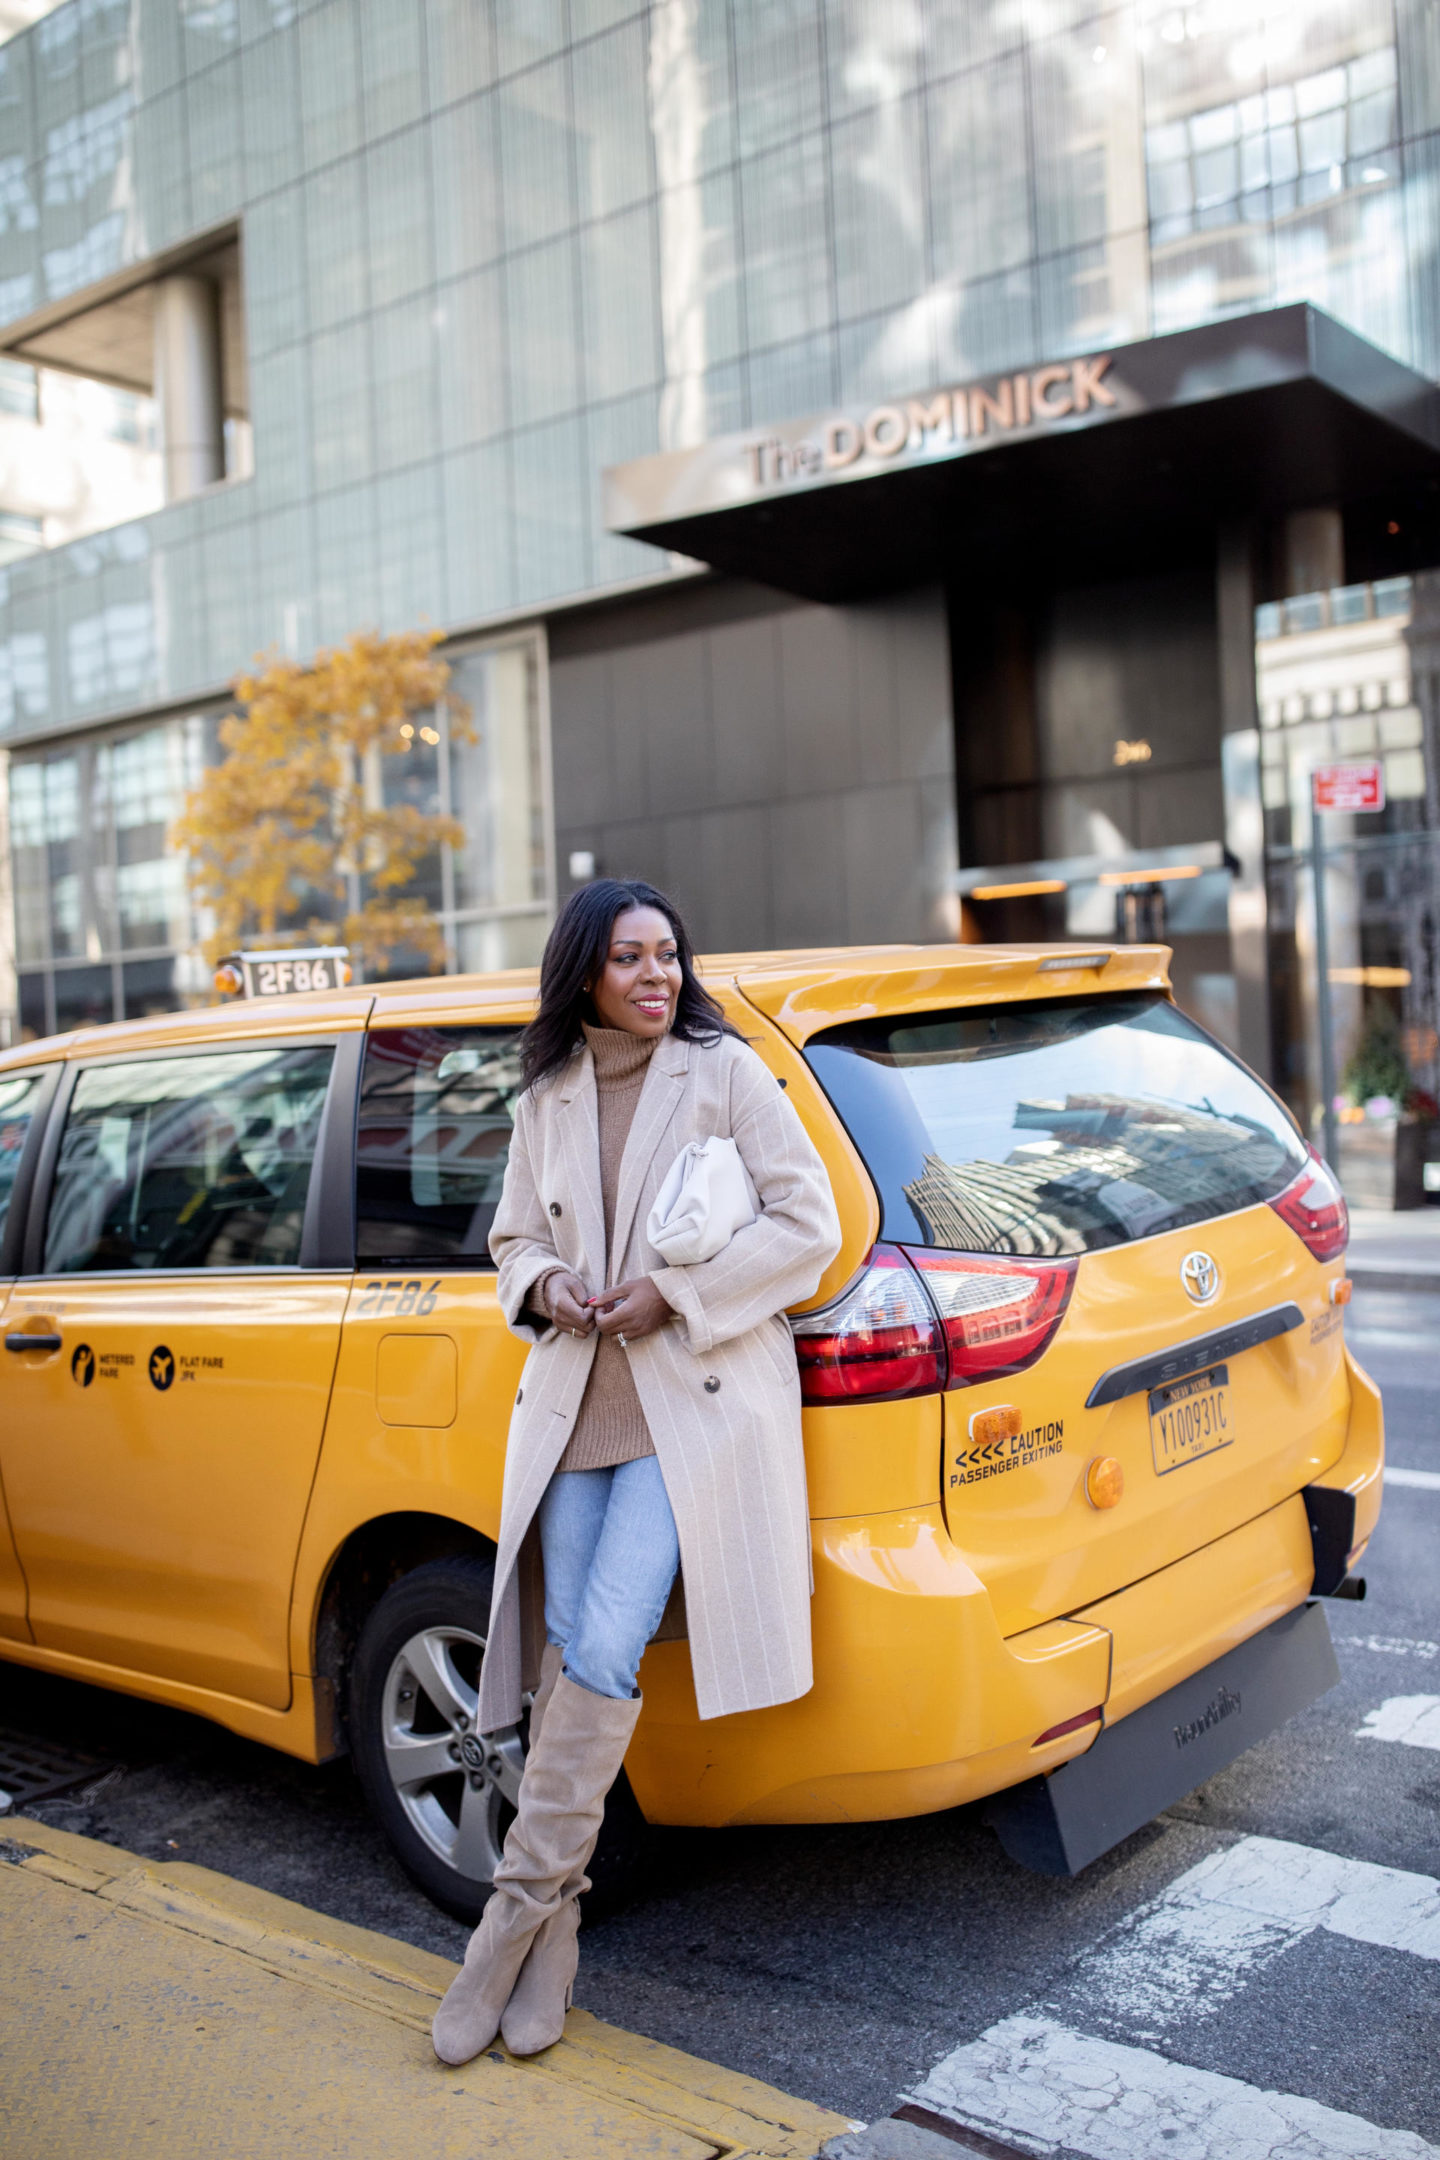 Dominique Baker leaning on a cab in NYC